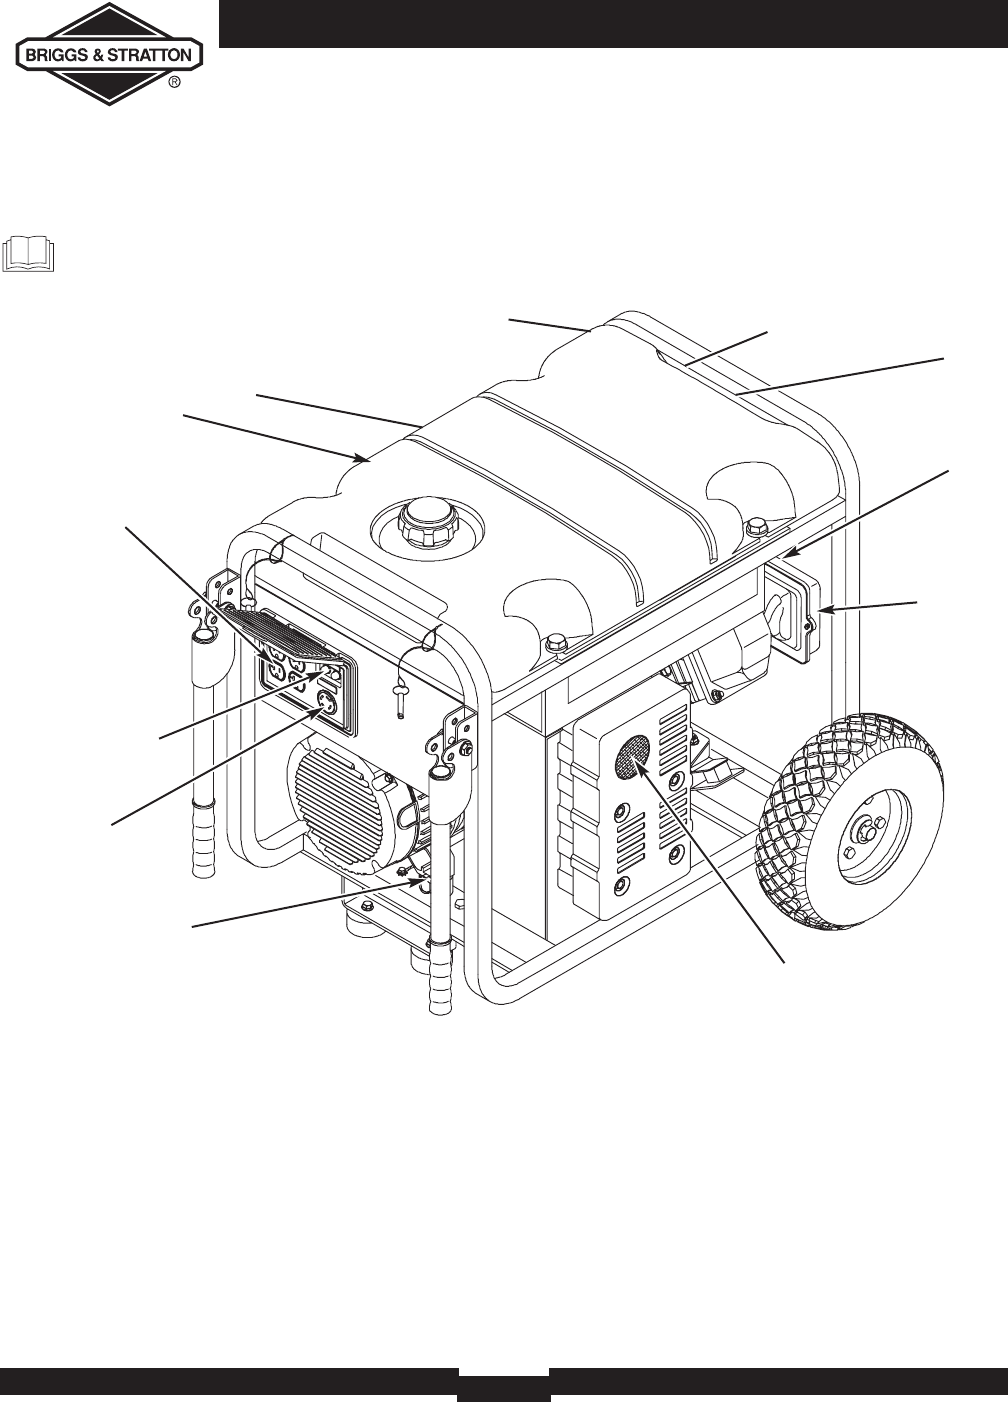 Page 6 of Briggs & Stratton Portable Generator 030242 User